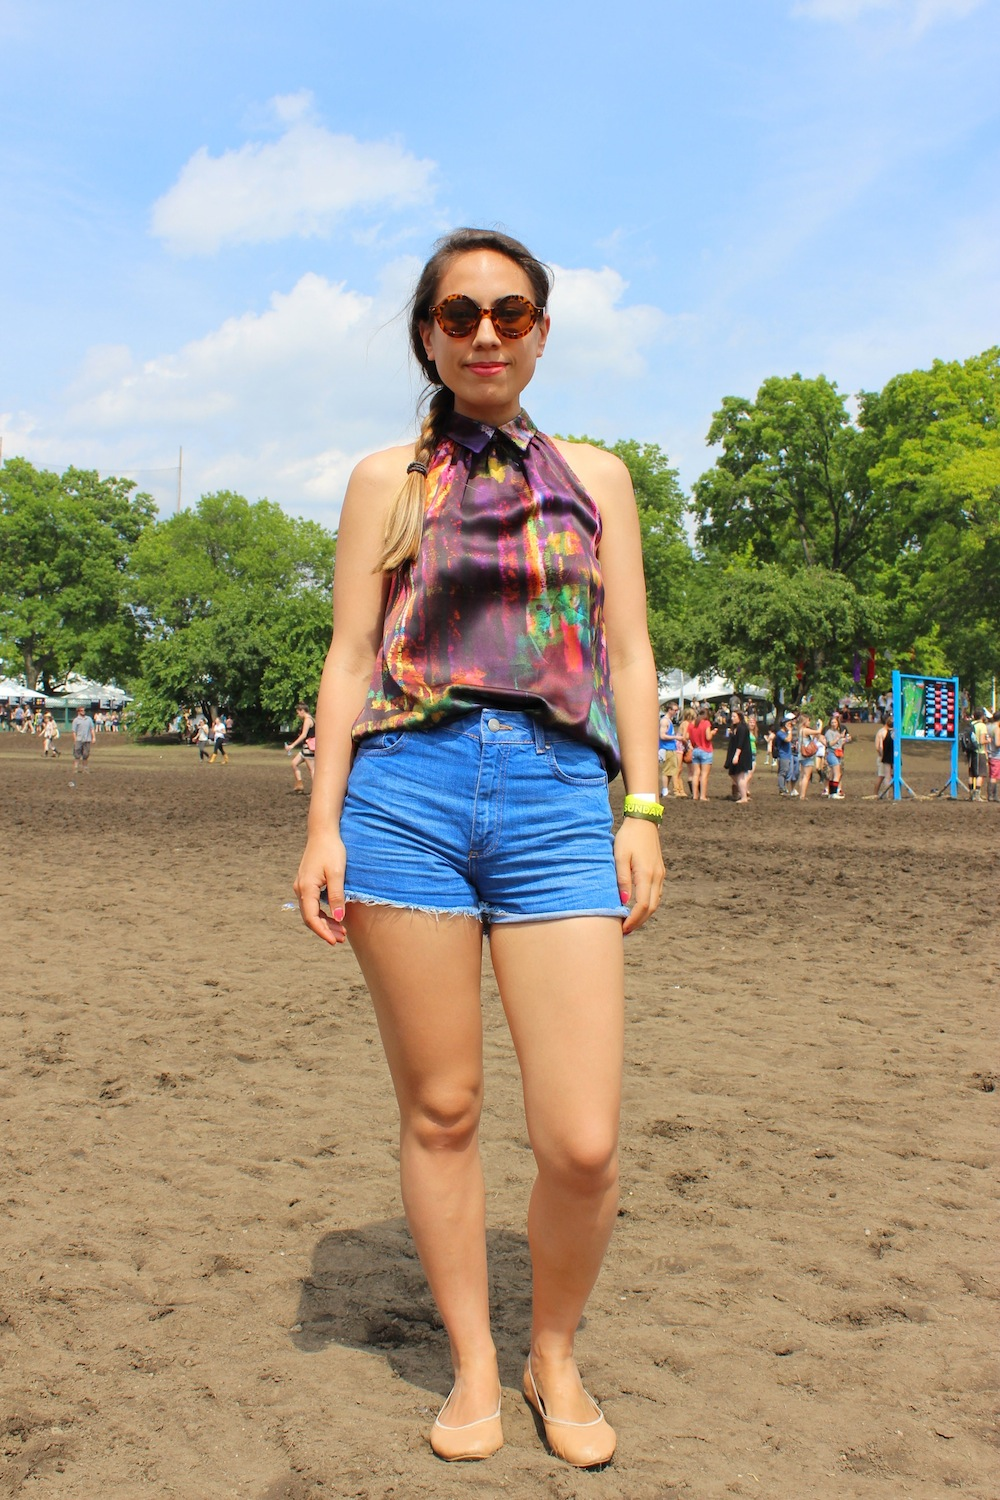 Corinne from London UK at Governors Ball 2013 Style